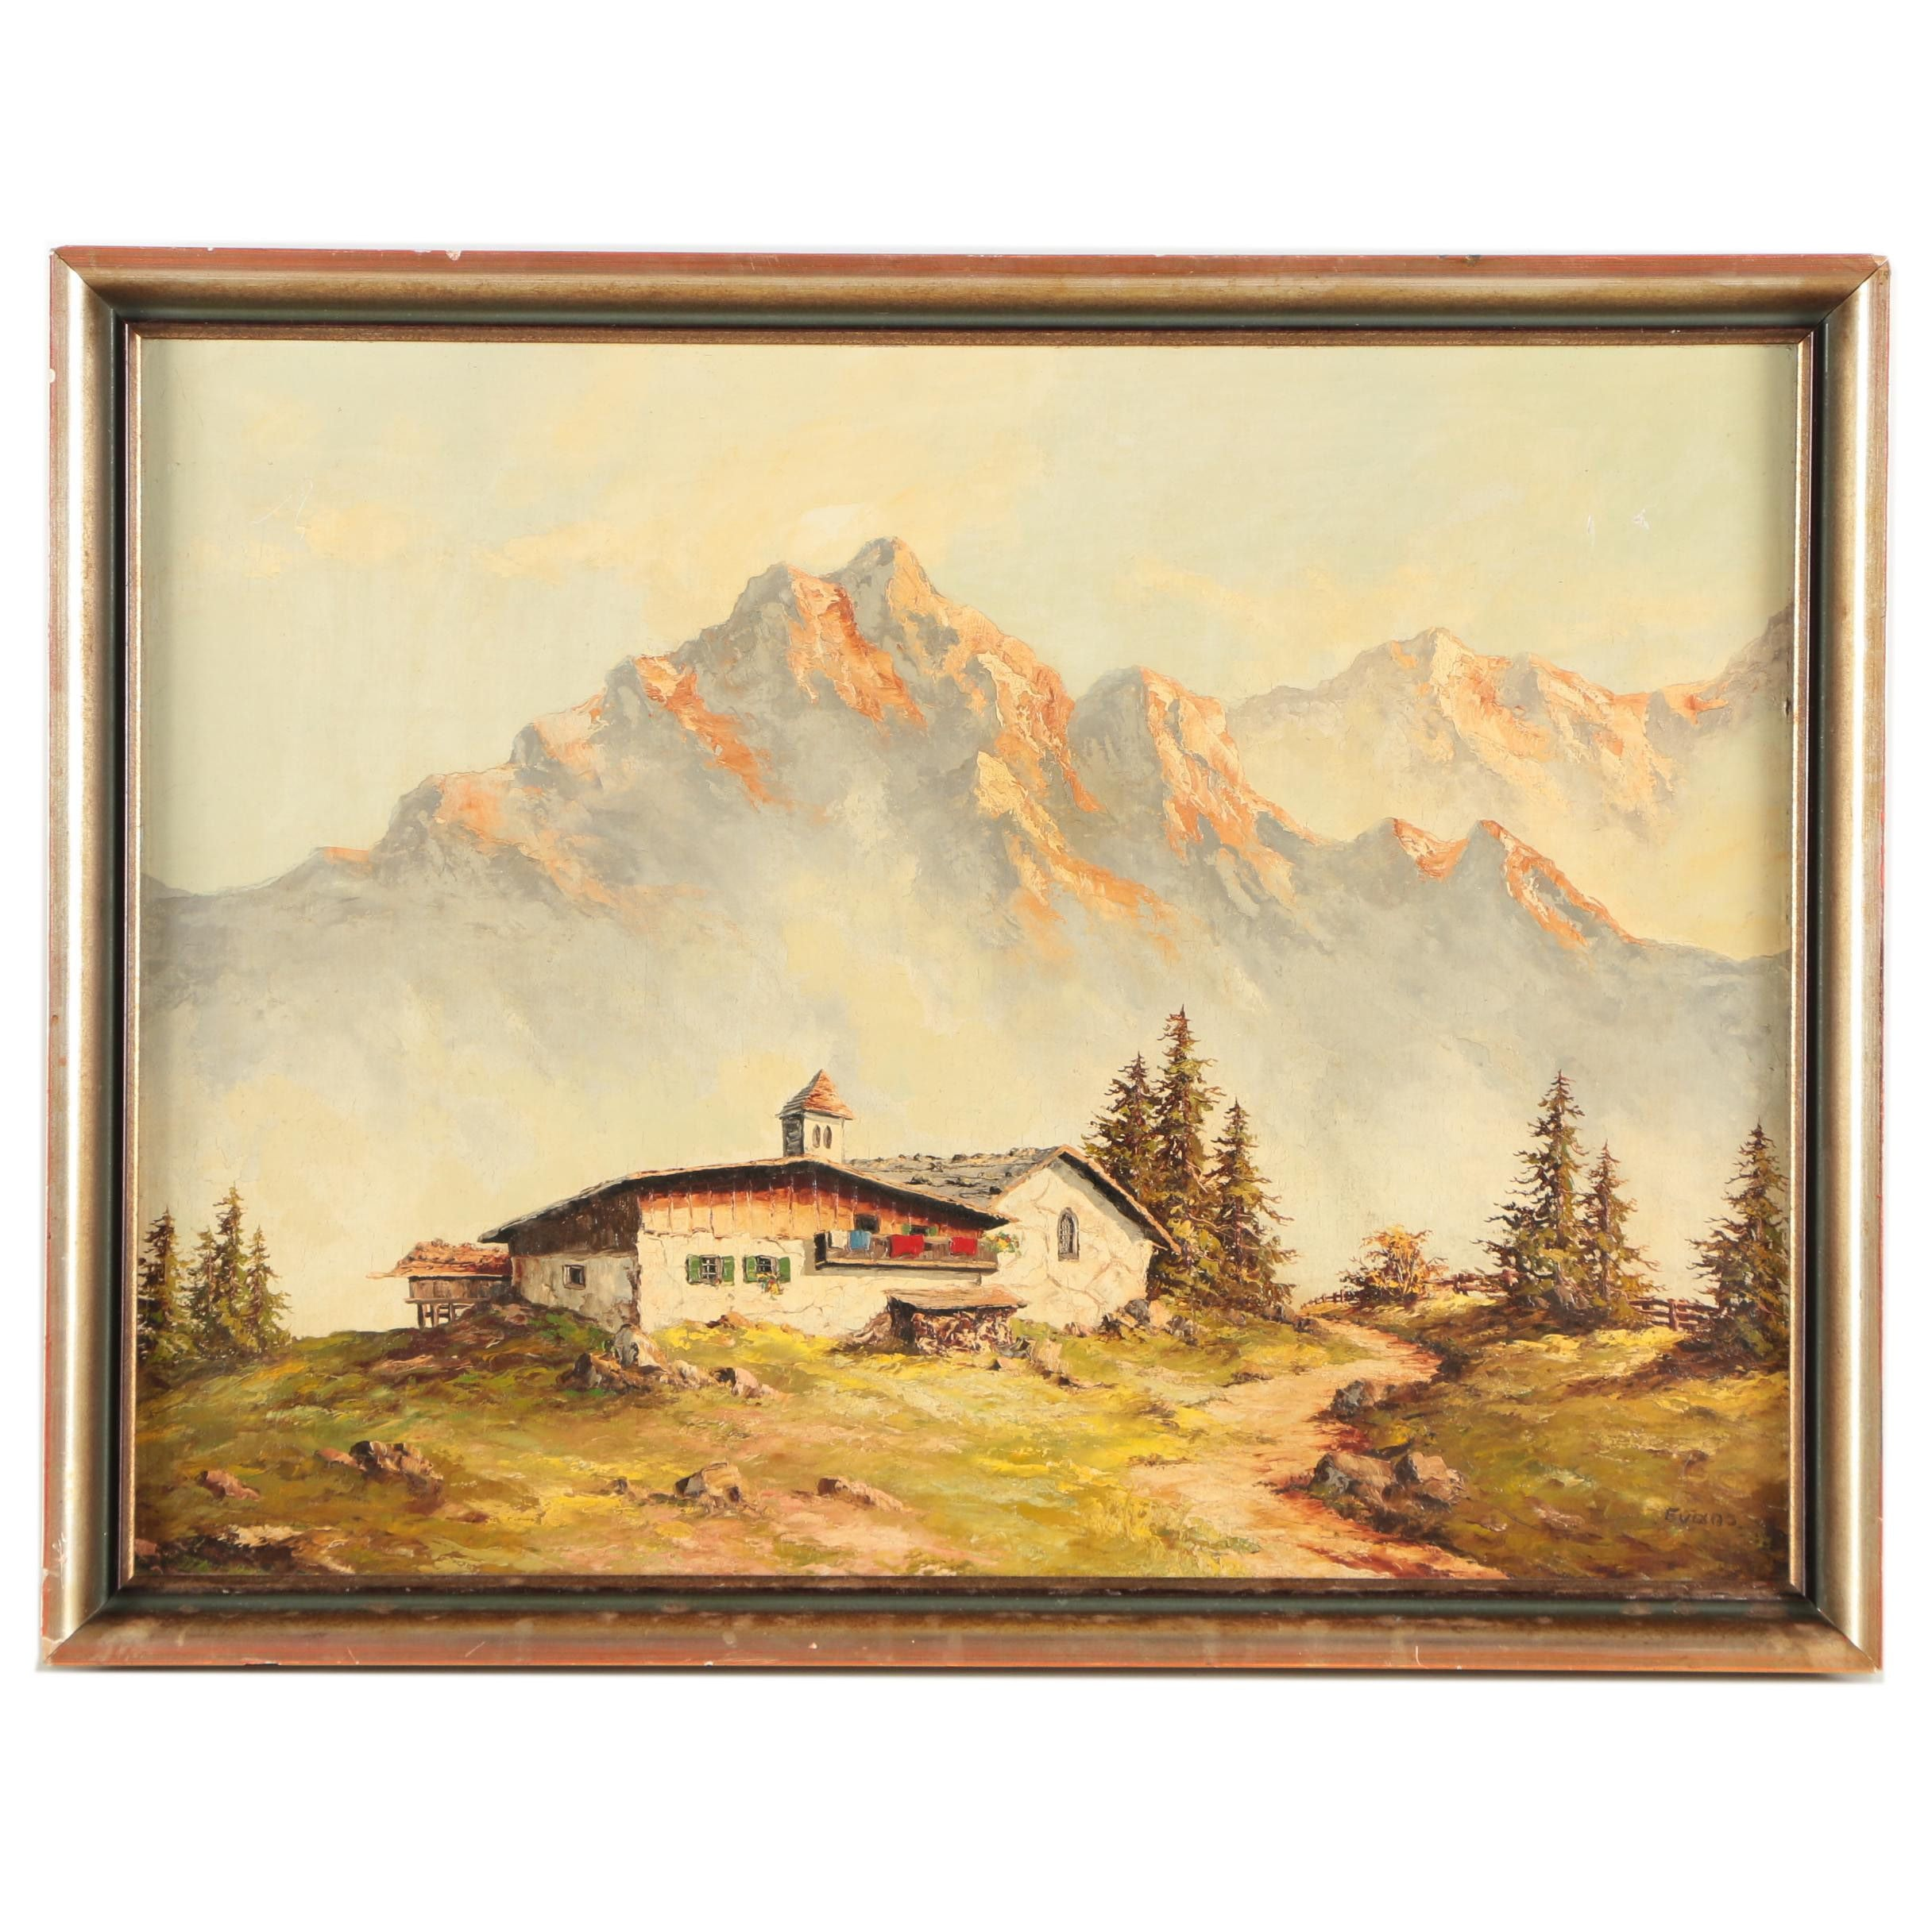 Evans Oil Painting of Mountain Landscape